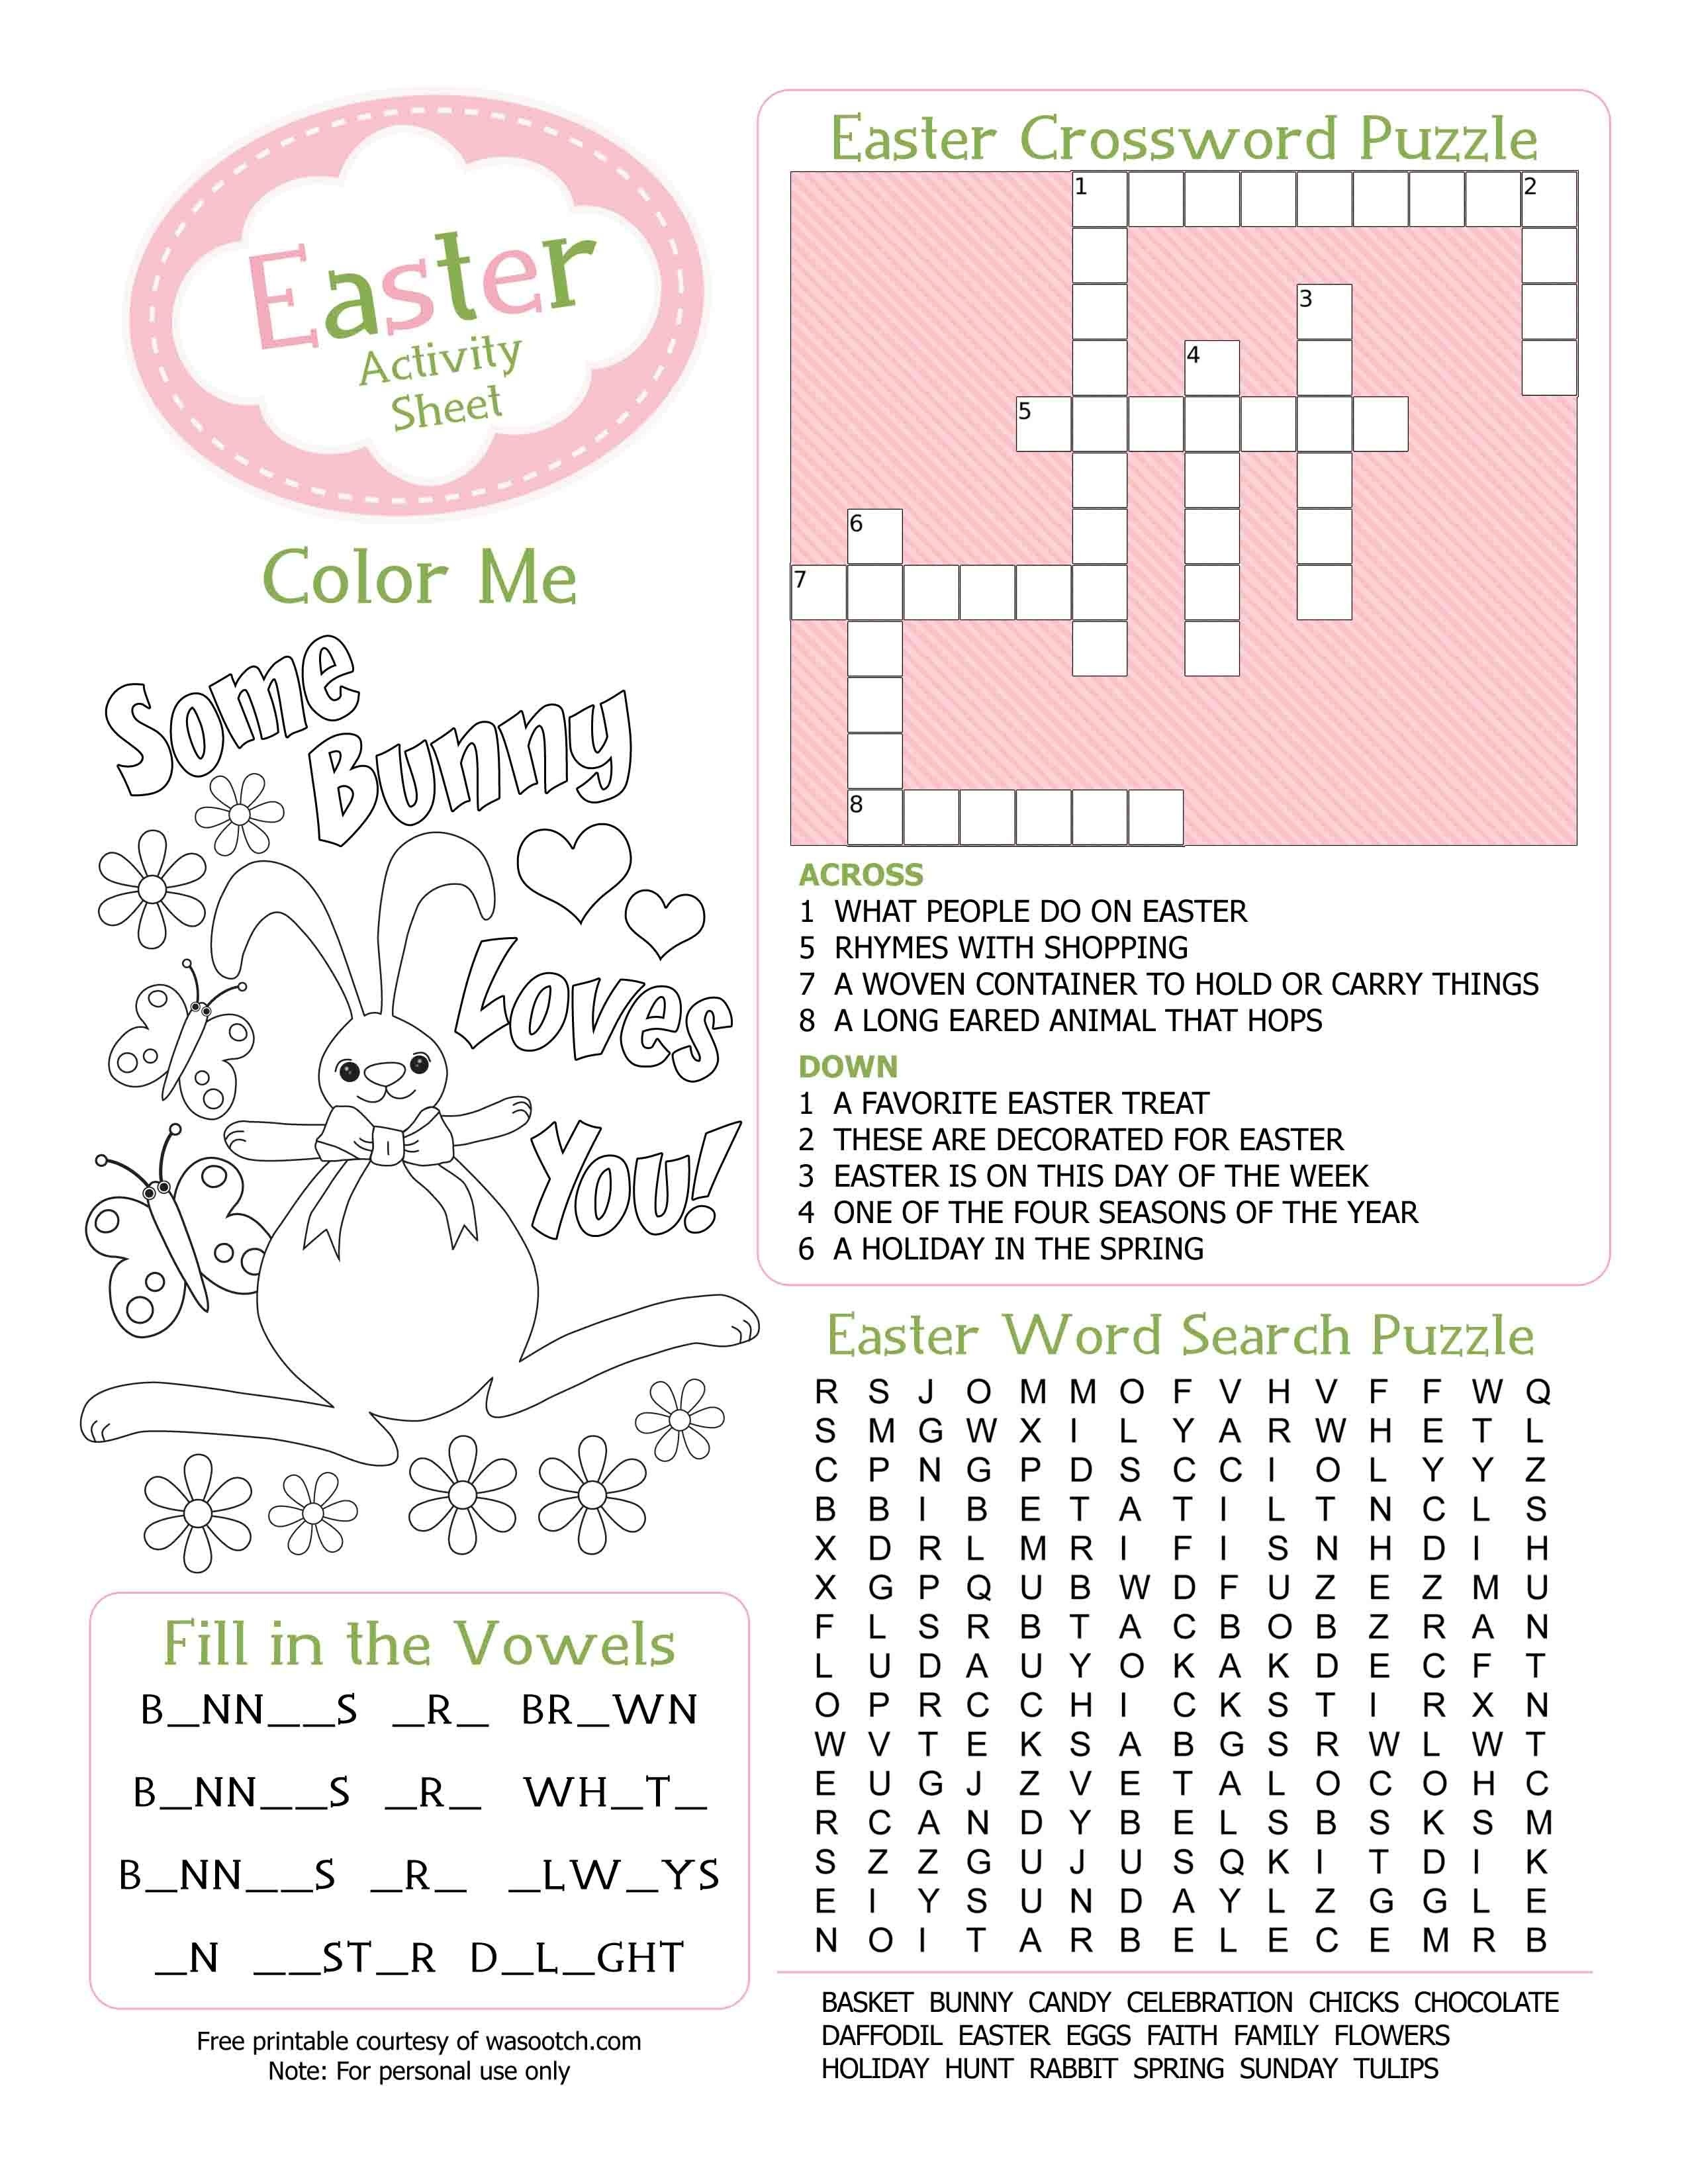 Easter Kid's Activity Sheet Free Printables Available @party - Free Printable Easter Puzzles For Adults